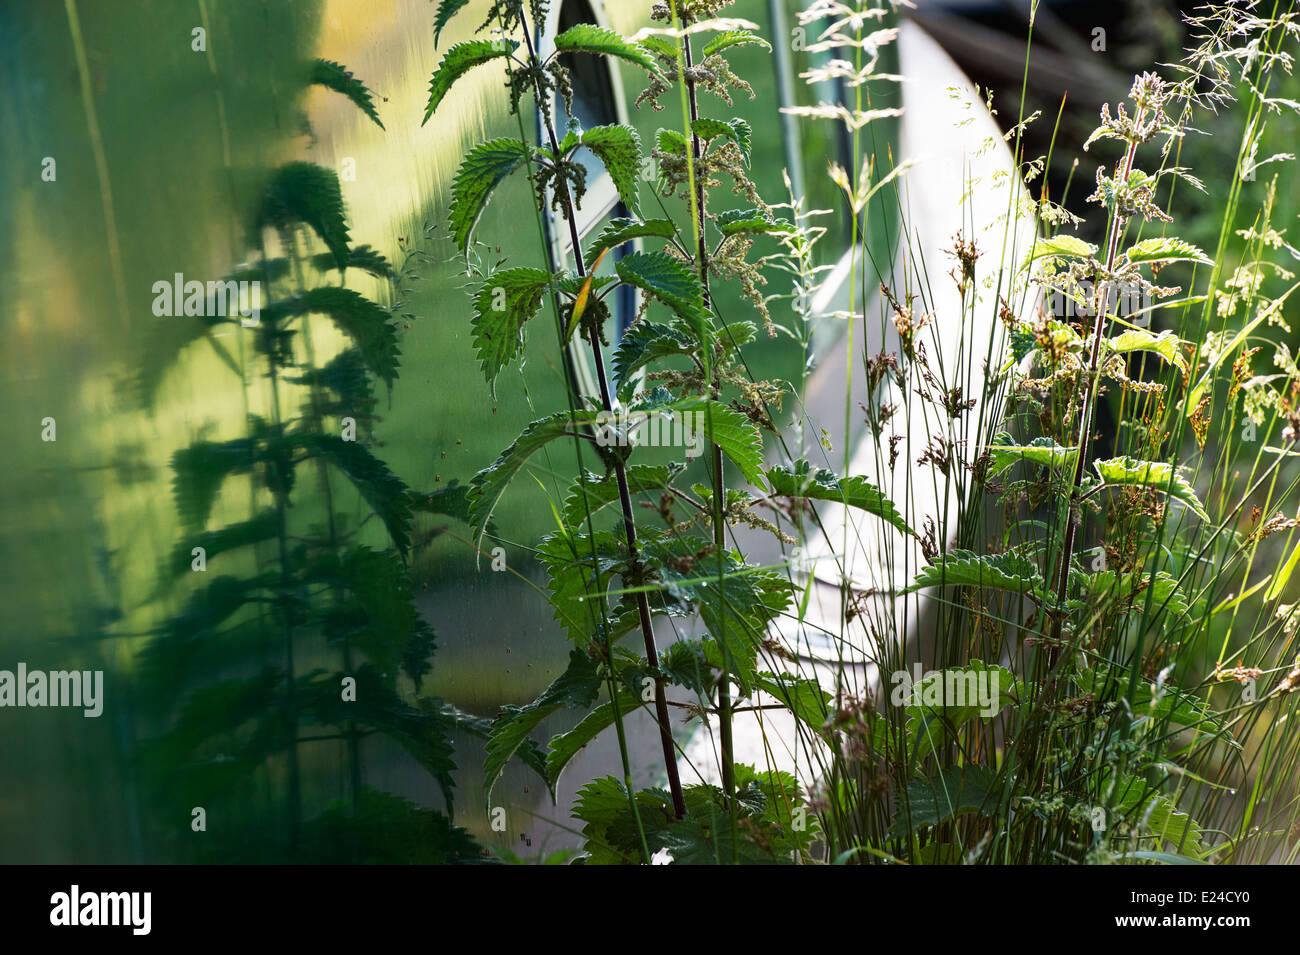 Urtica dioica. Stinging nettles growing next to a narrowboat with reflections on the towpath. England - Stock Image